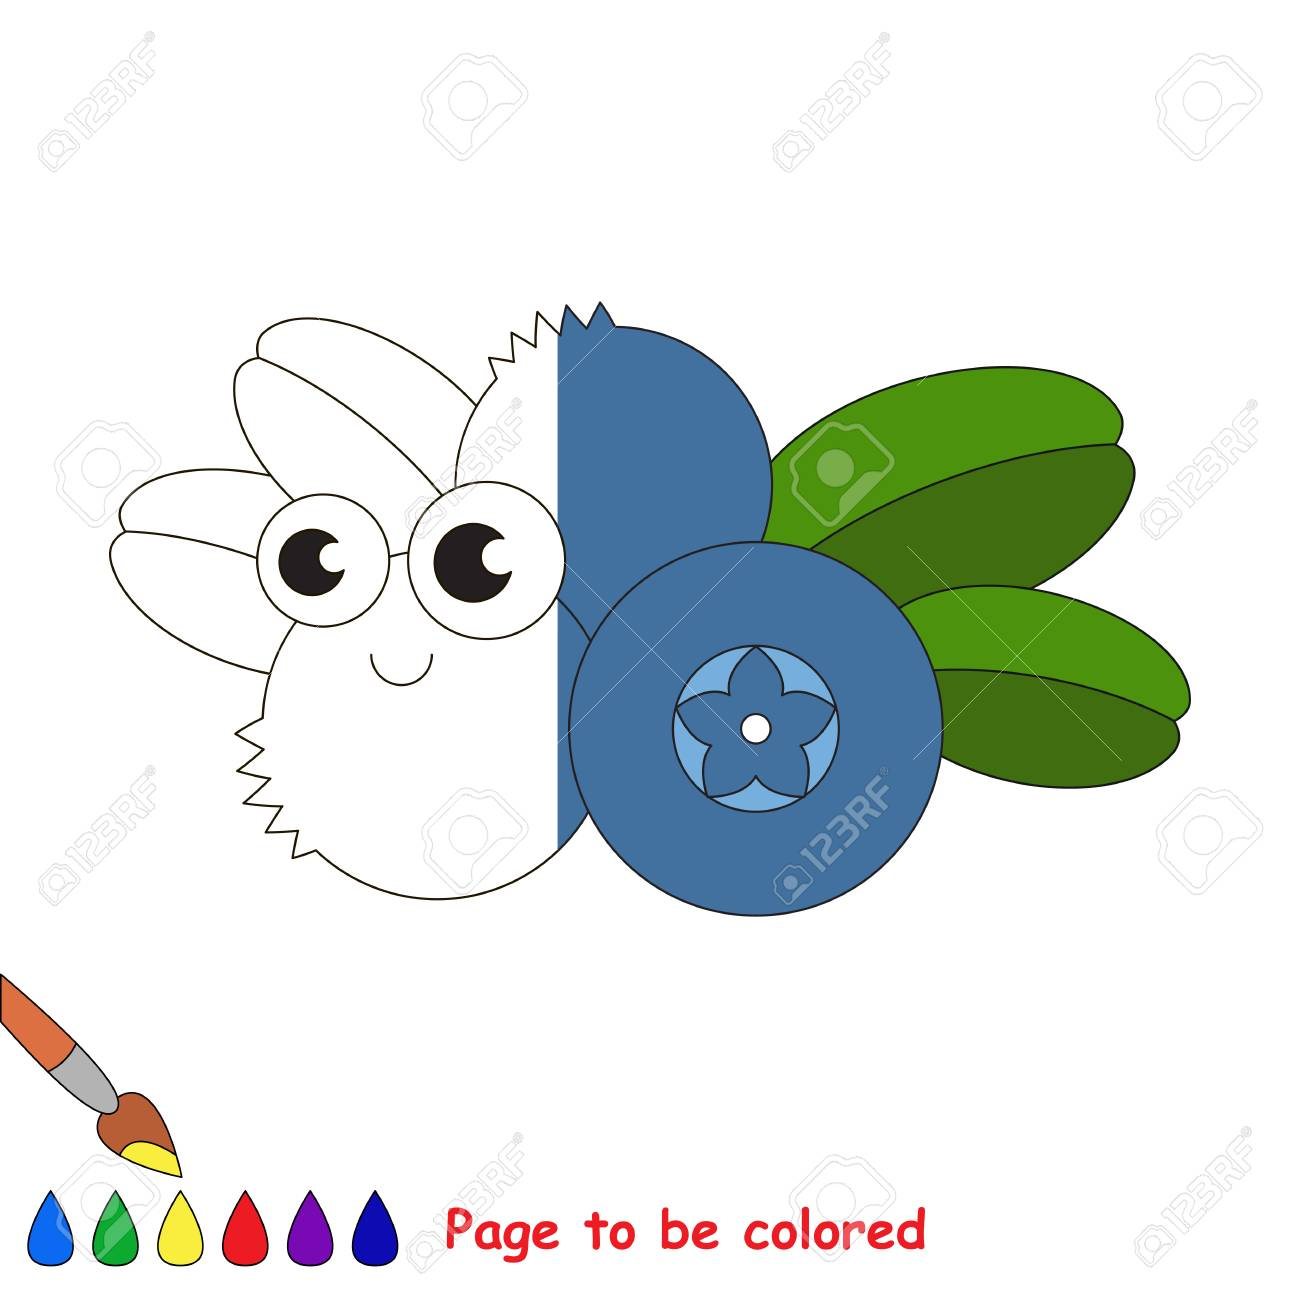 Blueberry To Be Colored, The Coloring Book To Educate Preschool ...